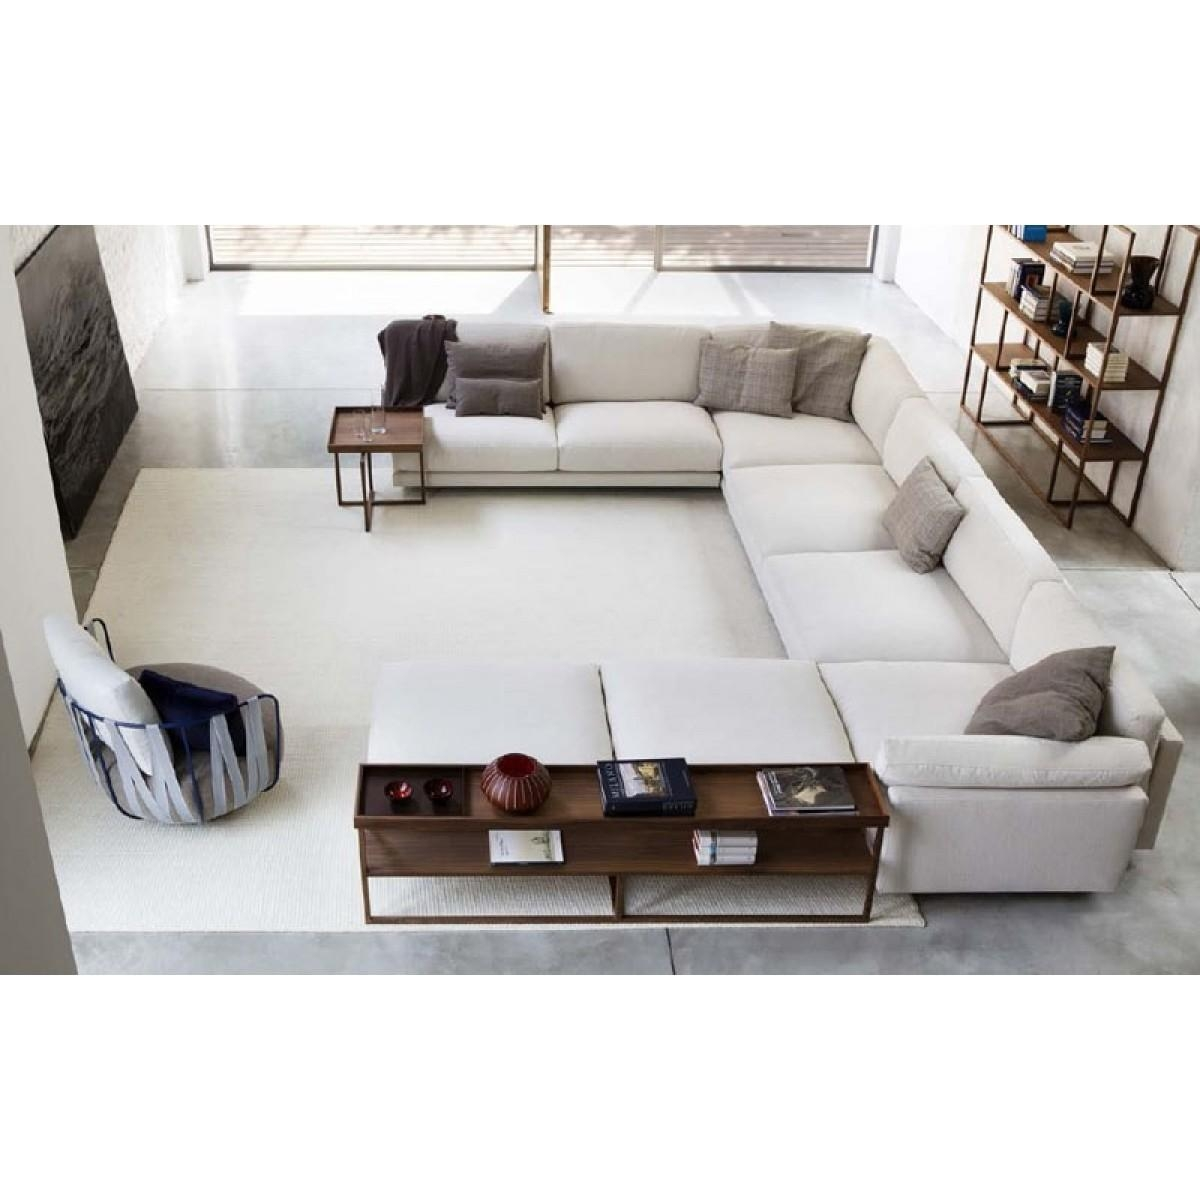 Oversized Deep Sectional Sofas | Tehranmix Decoration Pertaining To Wide Seat Sectional Sofas (View 14 of 20)